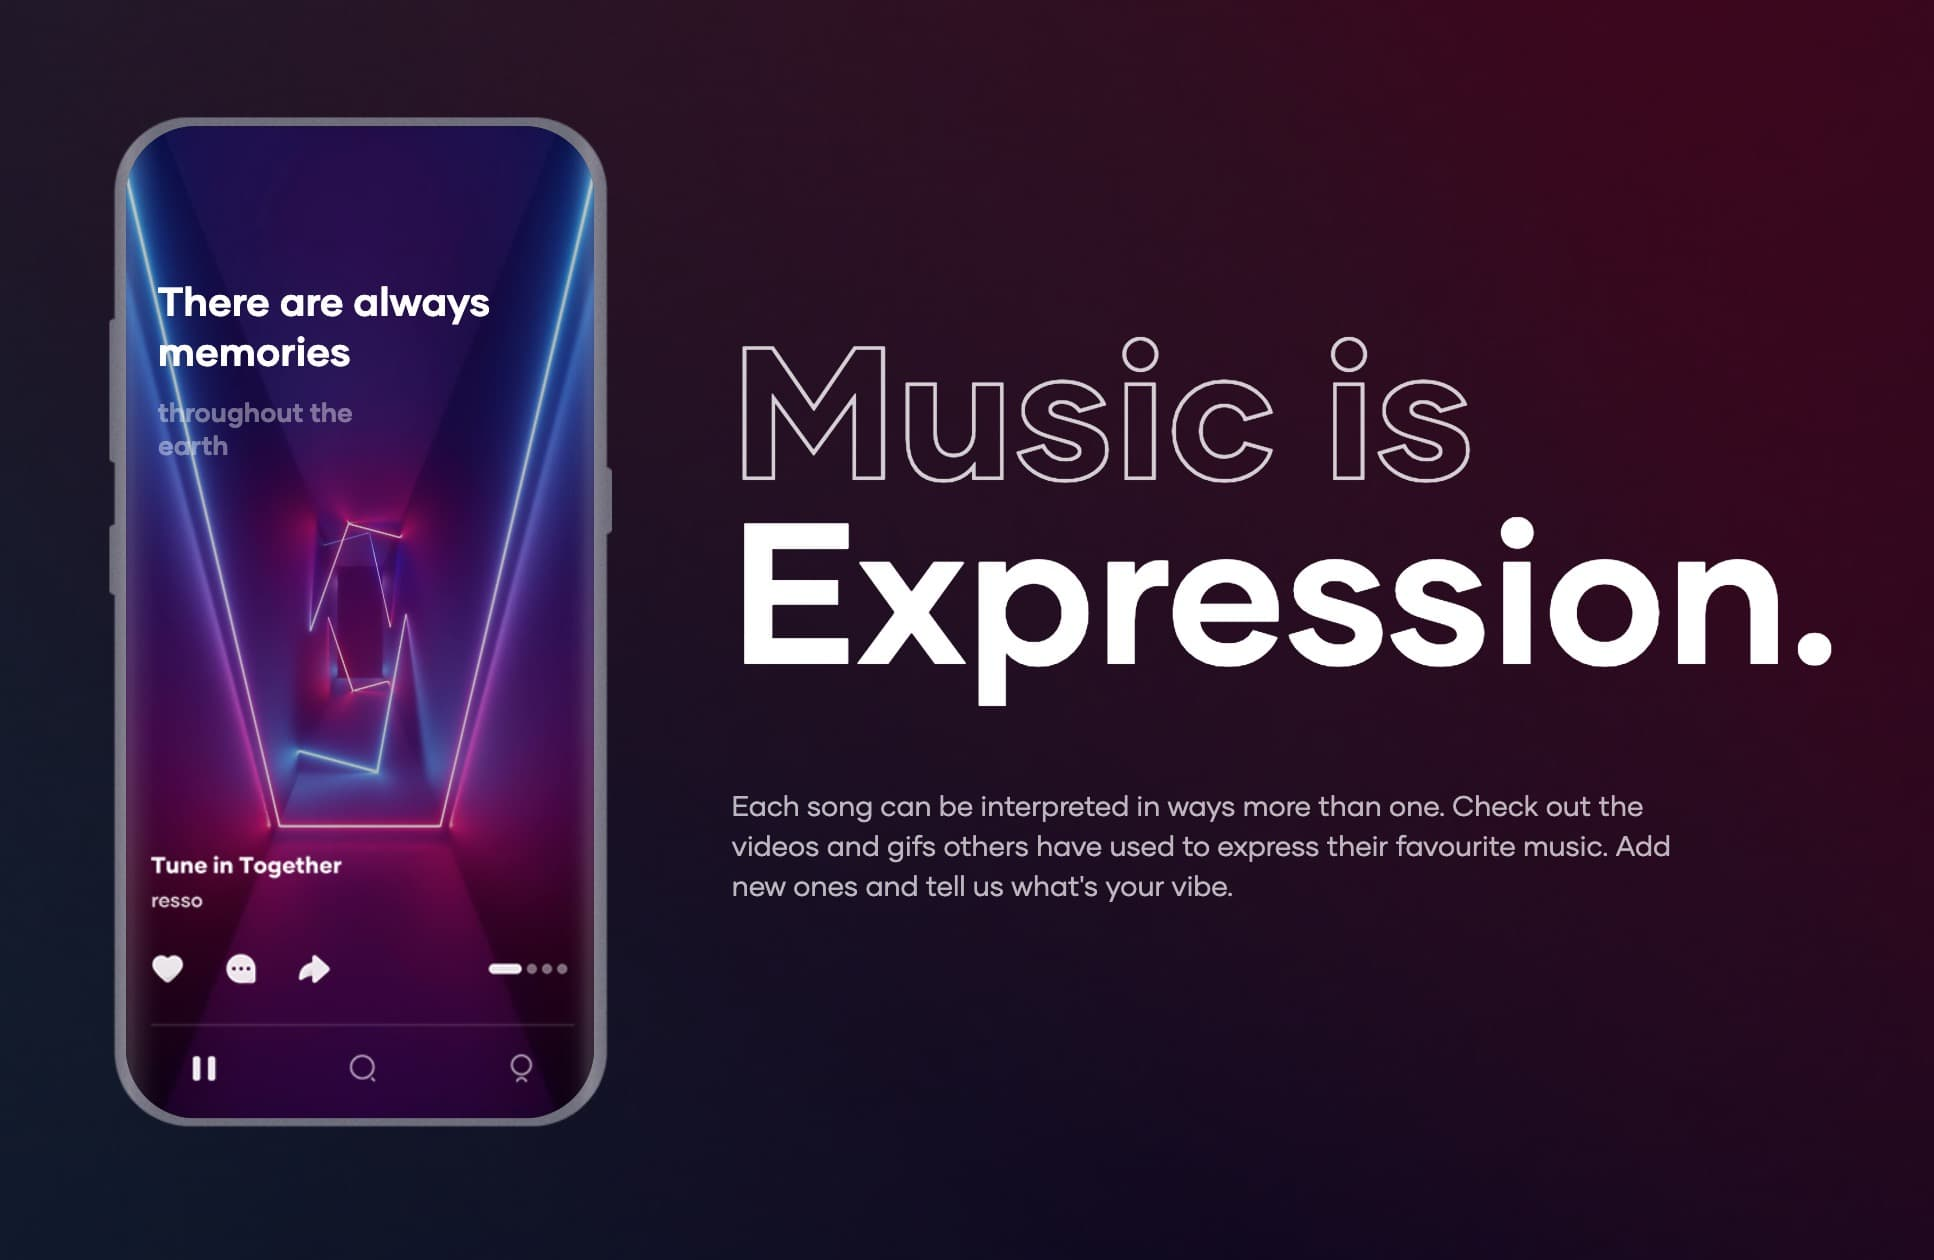 The vibe on TikTok's Resso service is totally different than Apple Music